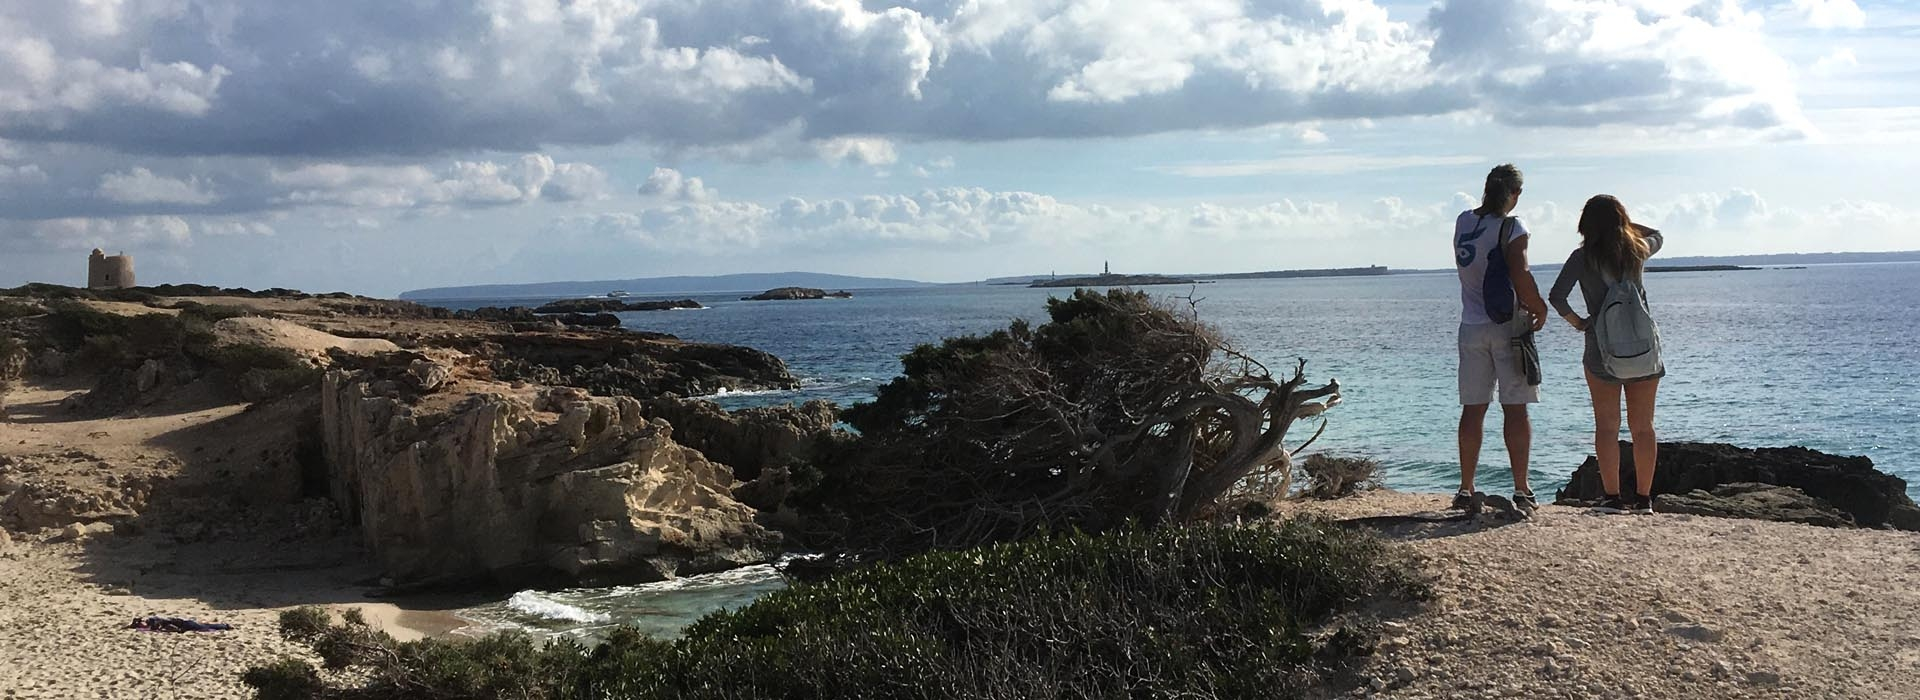 walking routes in Ibiza for spring